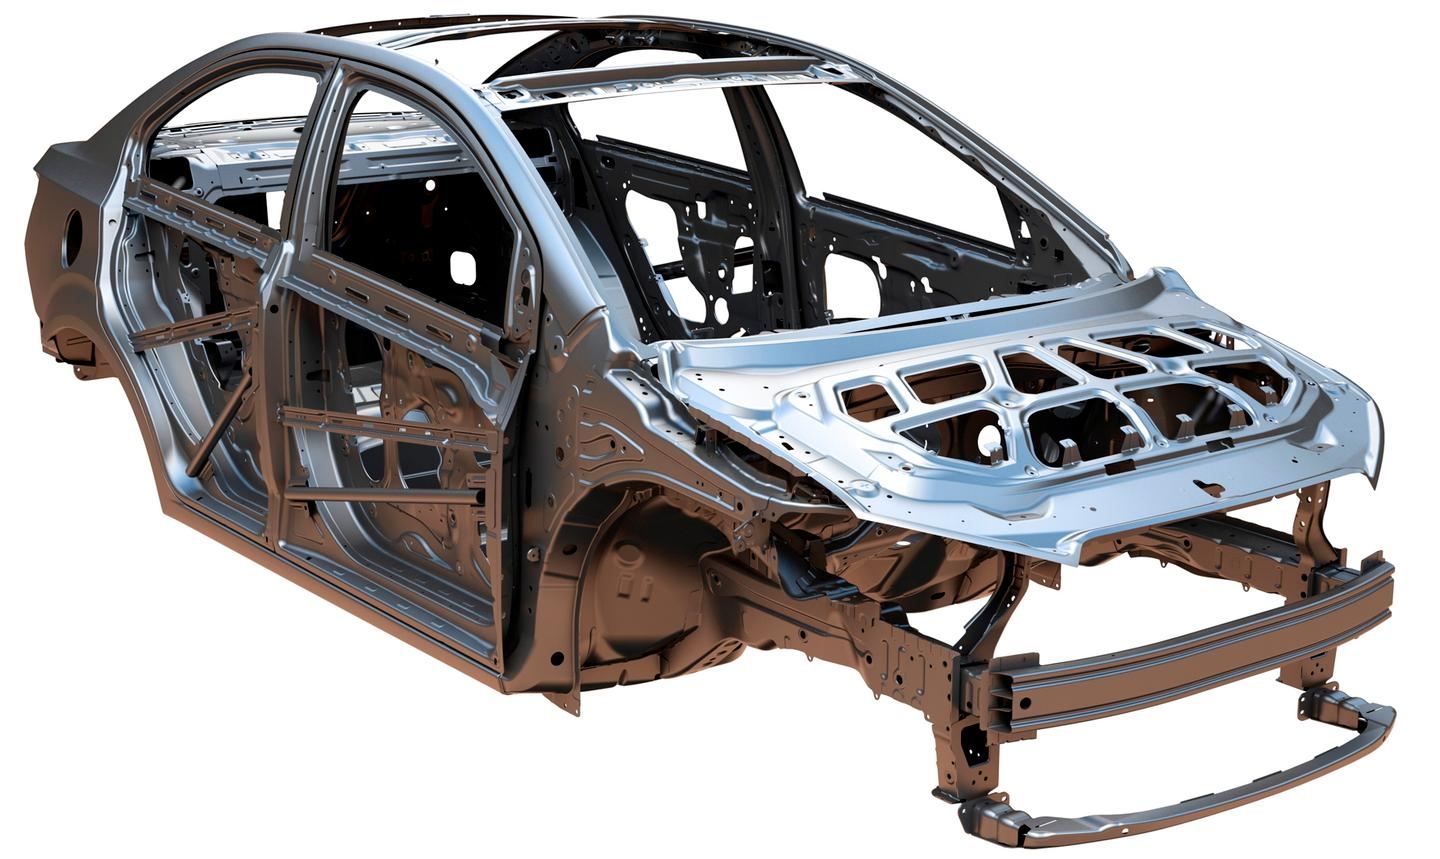 NanoSteel's advanced high-strength steel sheet material will form the structural parts of the car